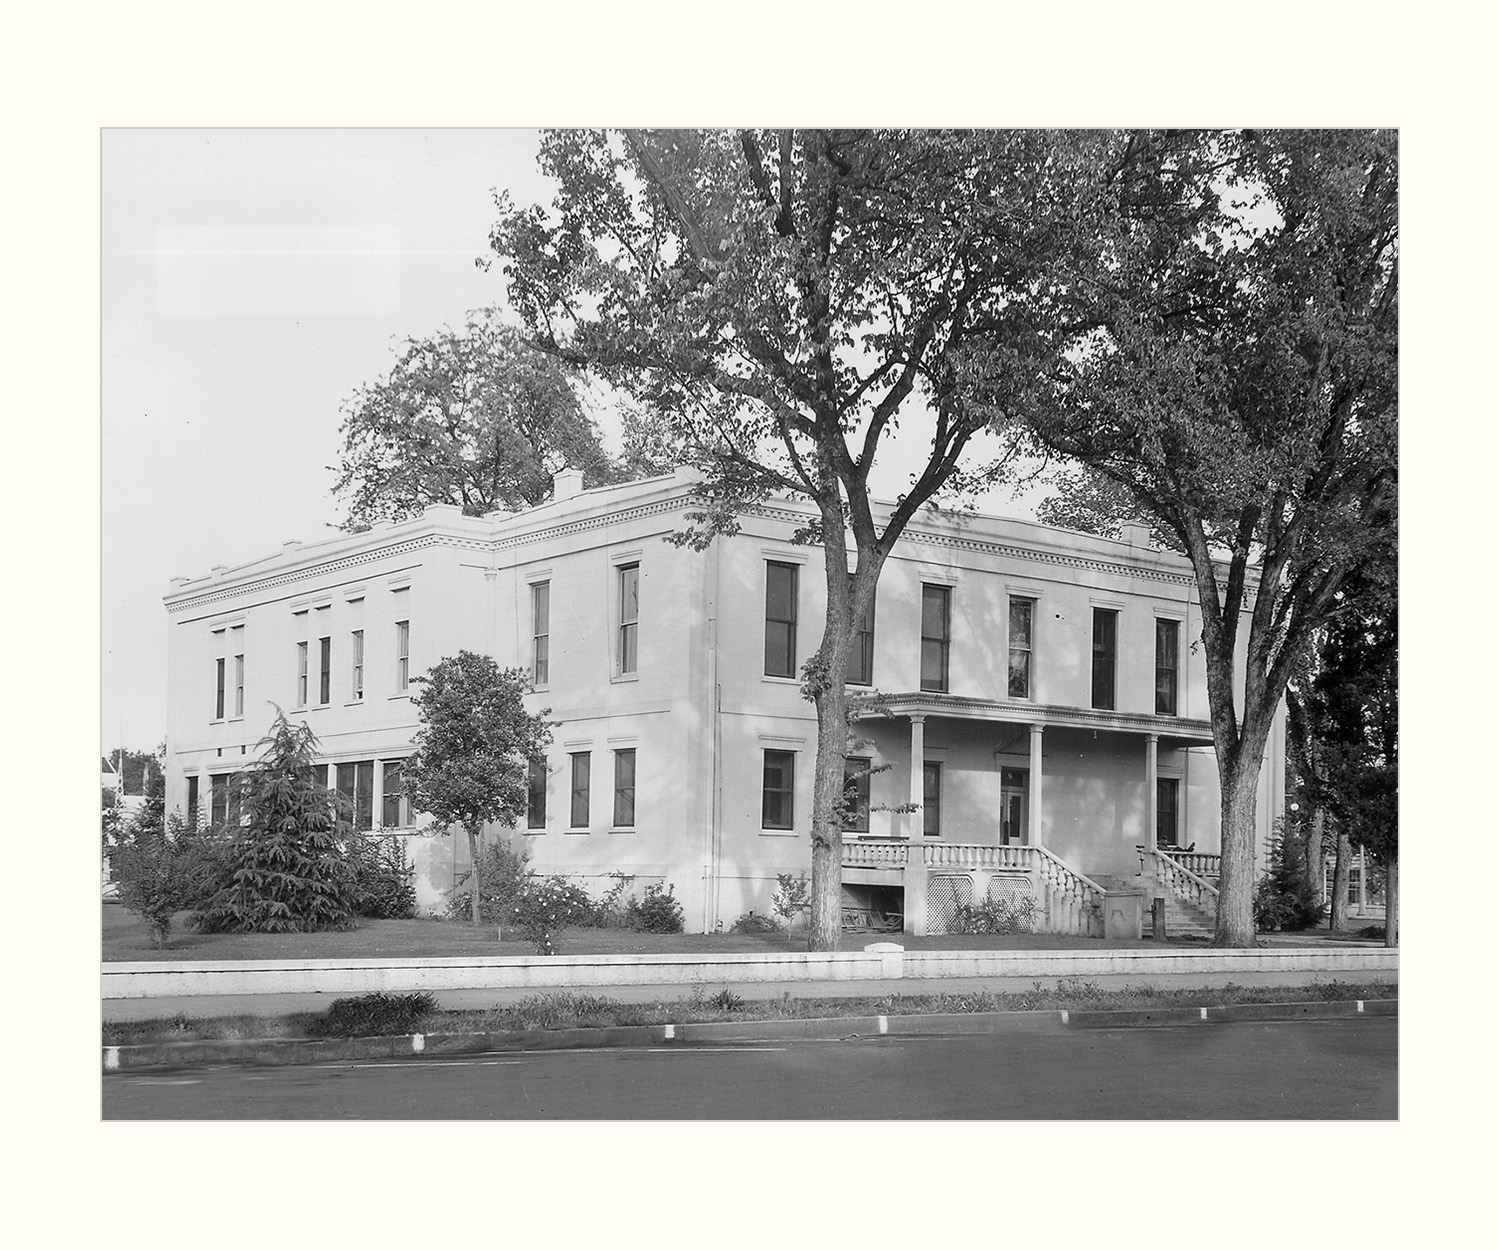 California Courthouses: Butte County